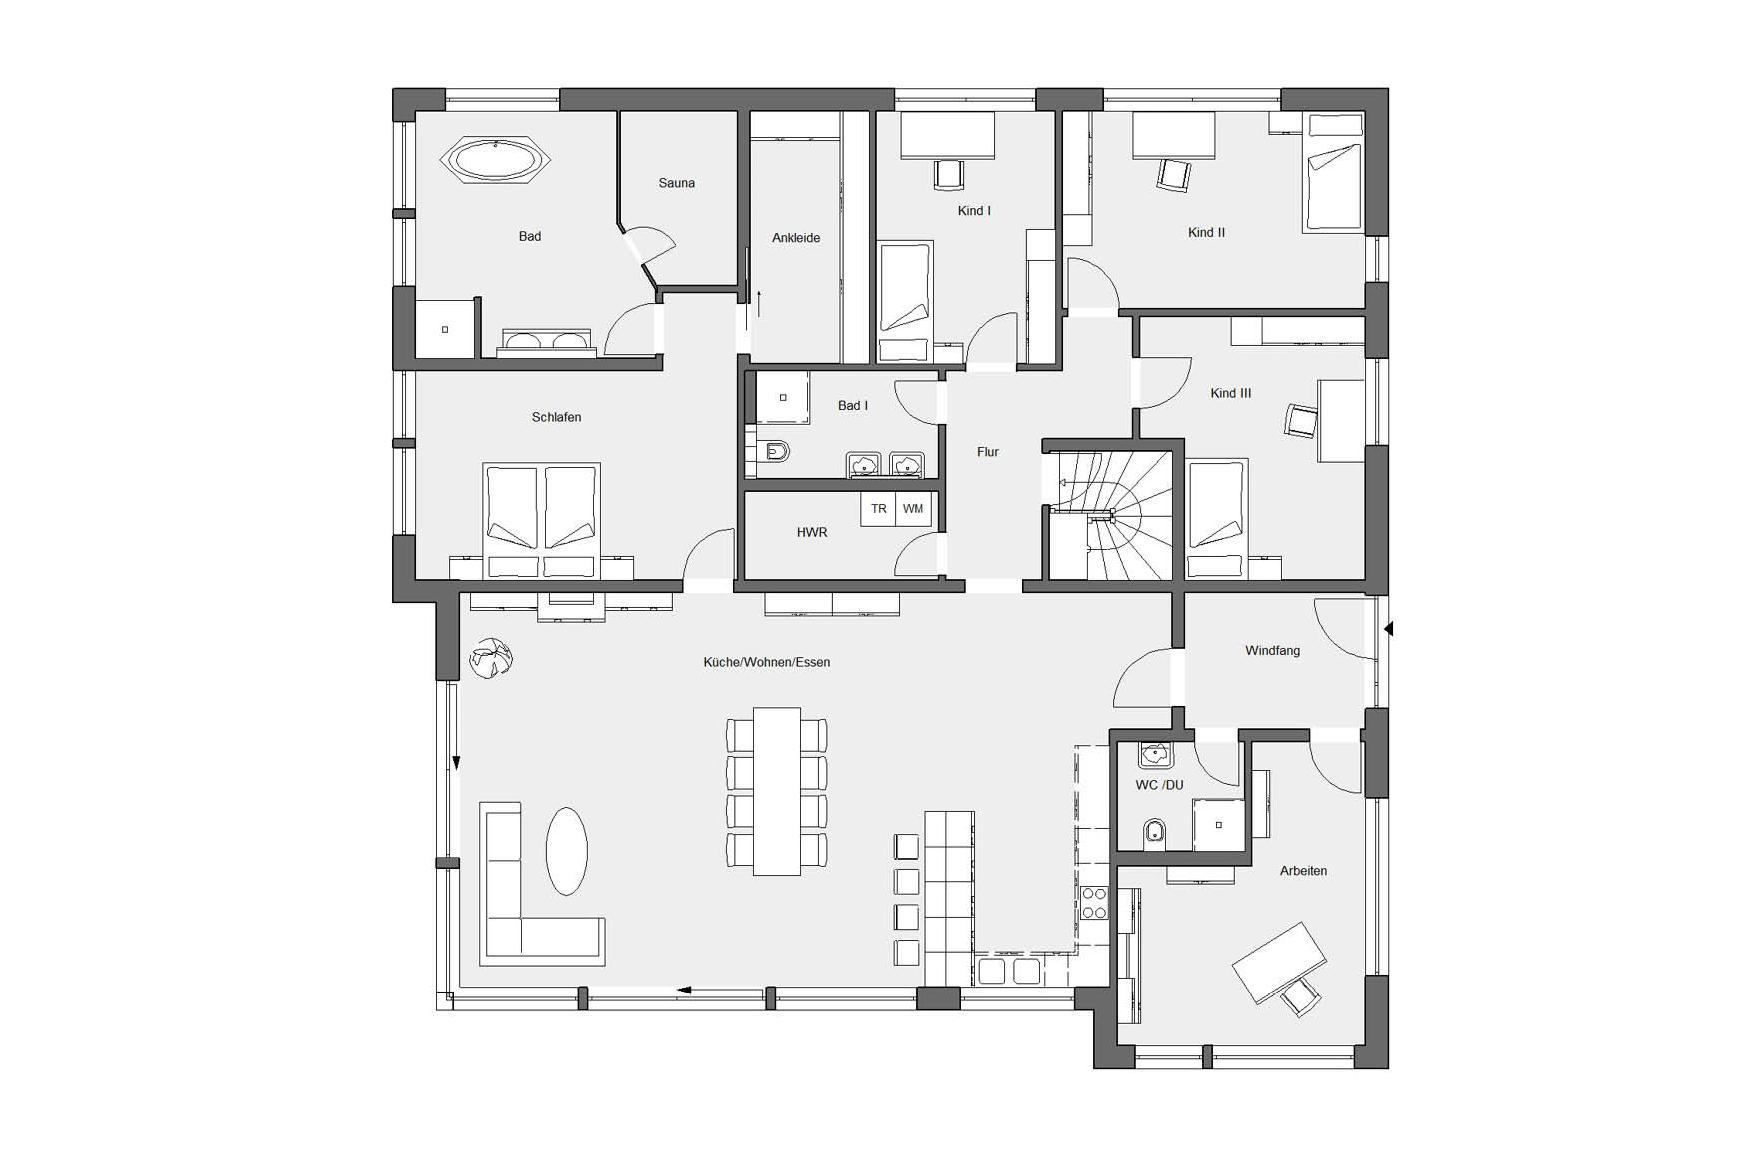 Ground floor plan E 10-230.1 Bungalow with roof terrace